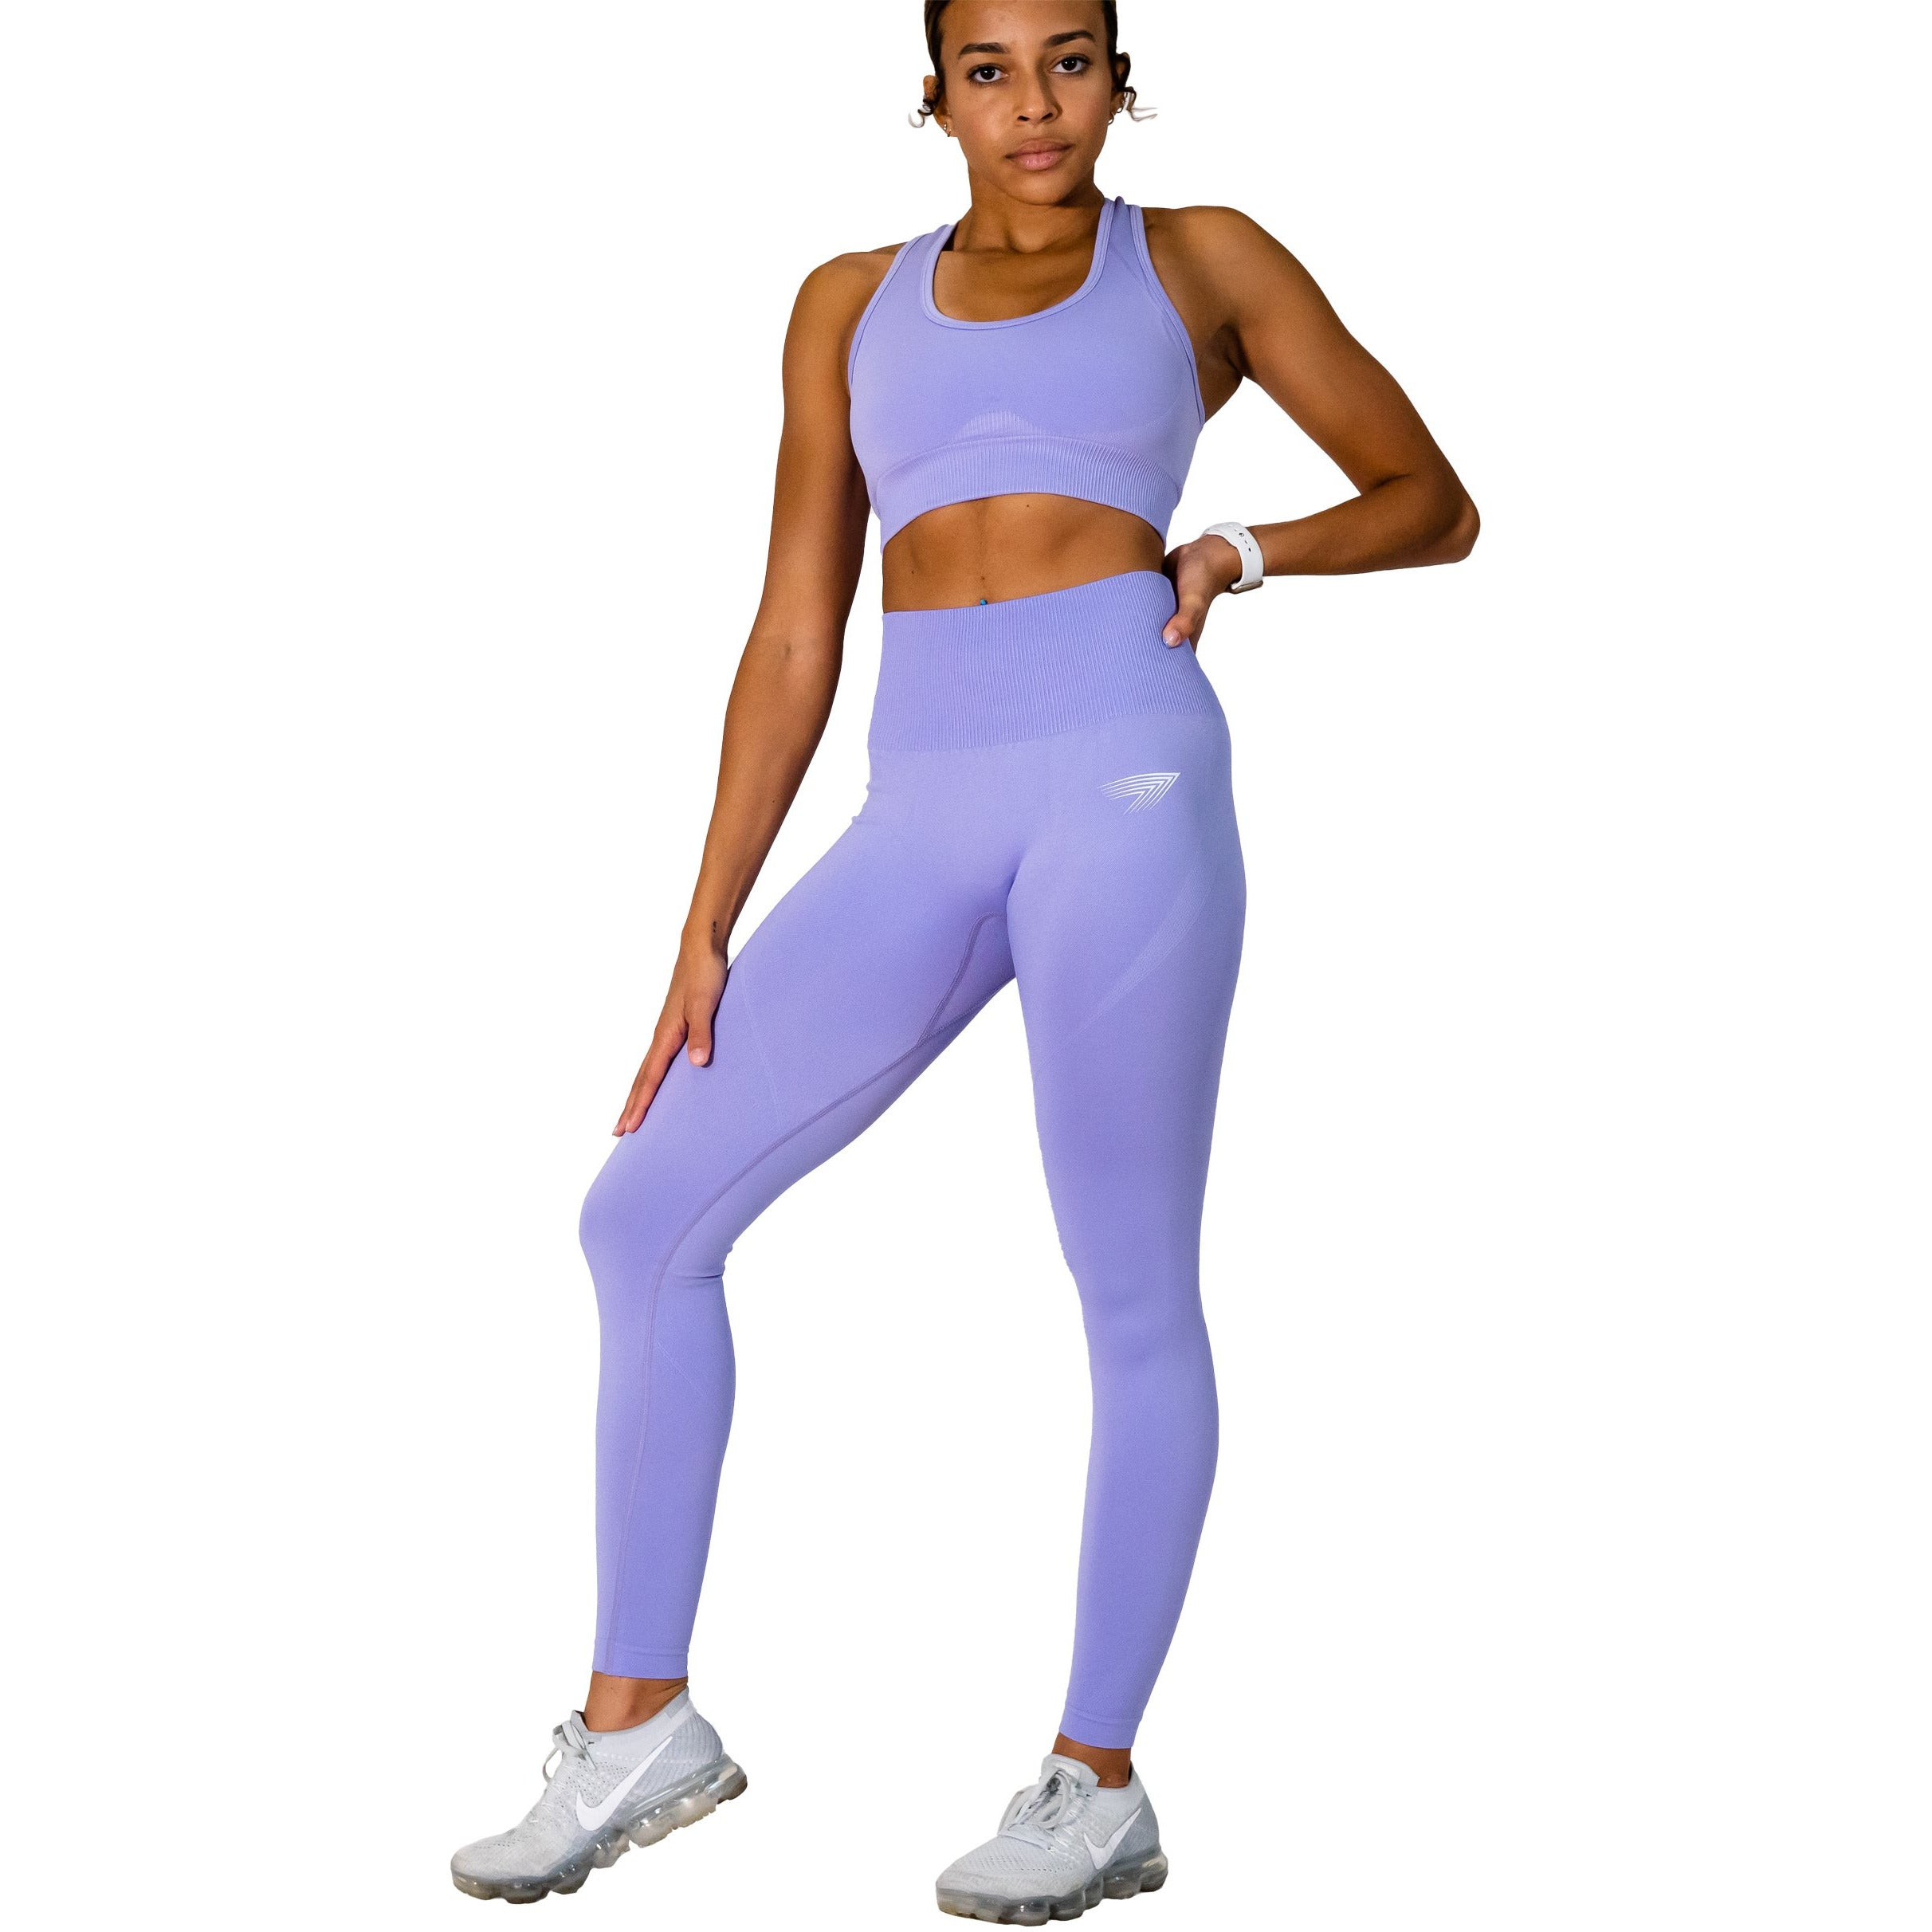 Violet Eternal Leggings